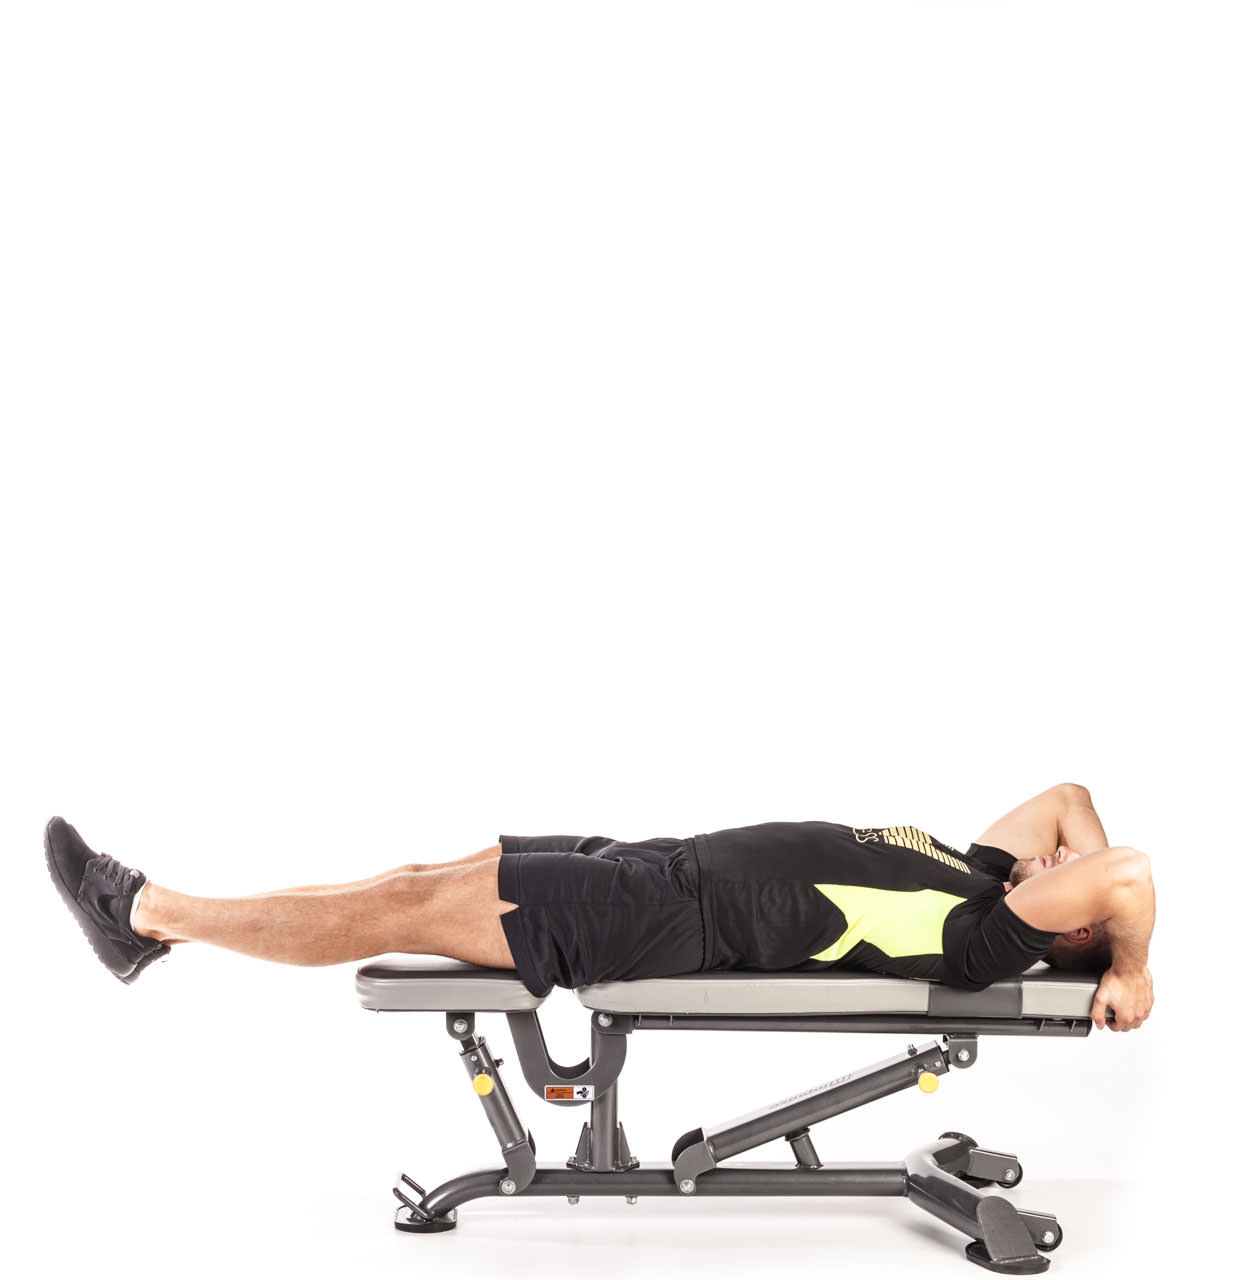 Flat Bench Leg and Hip Raise frame #1